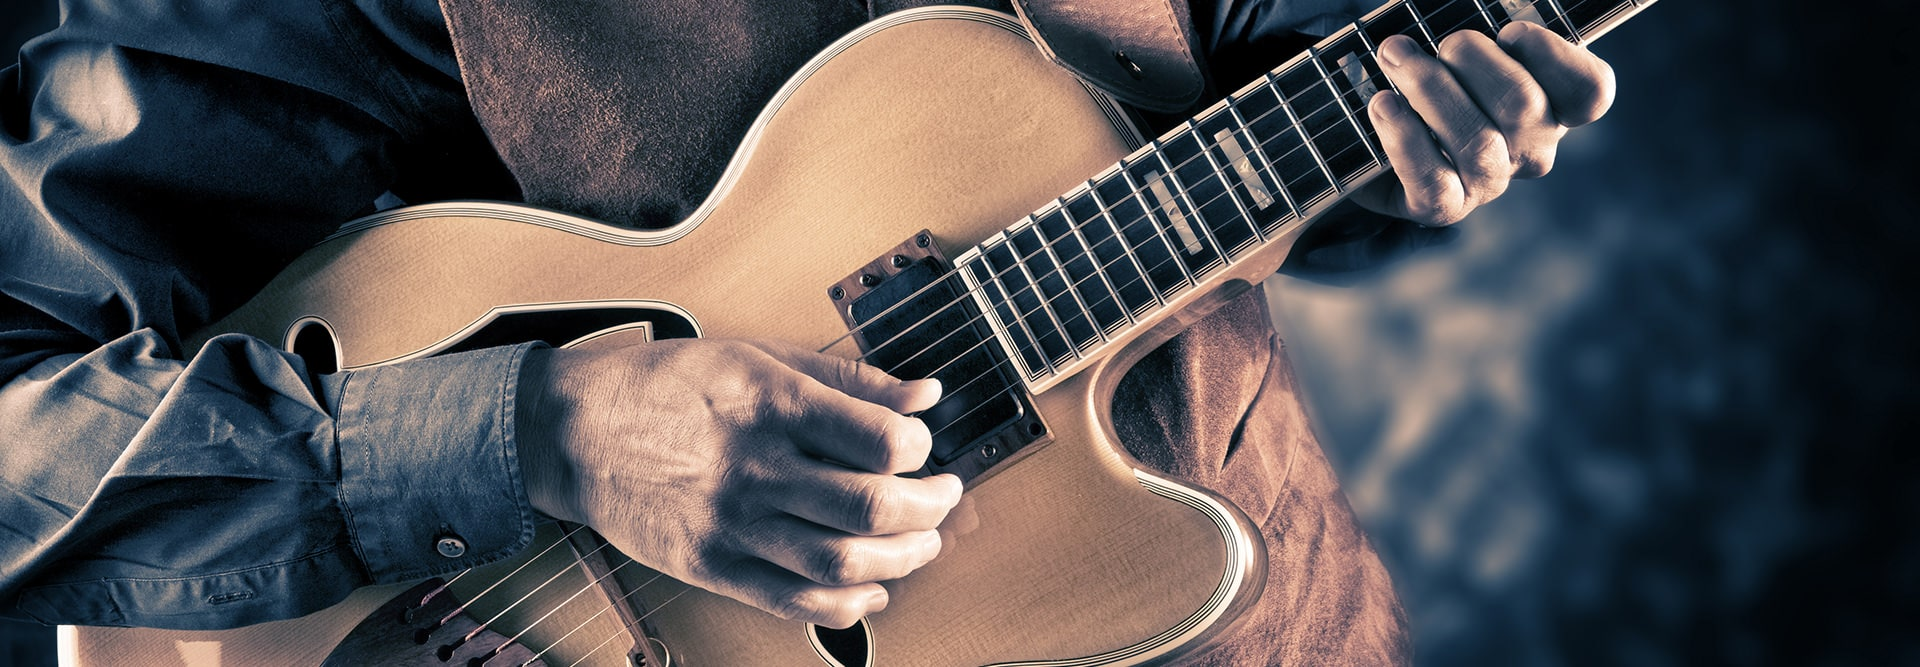 learn to play guitar, how to play guitar, guitar lessons